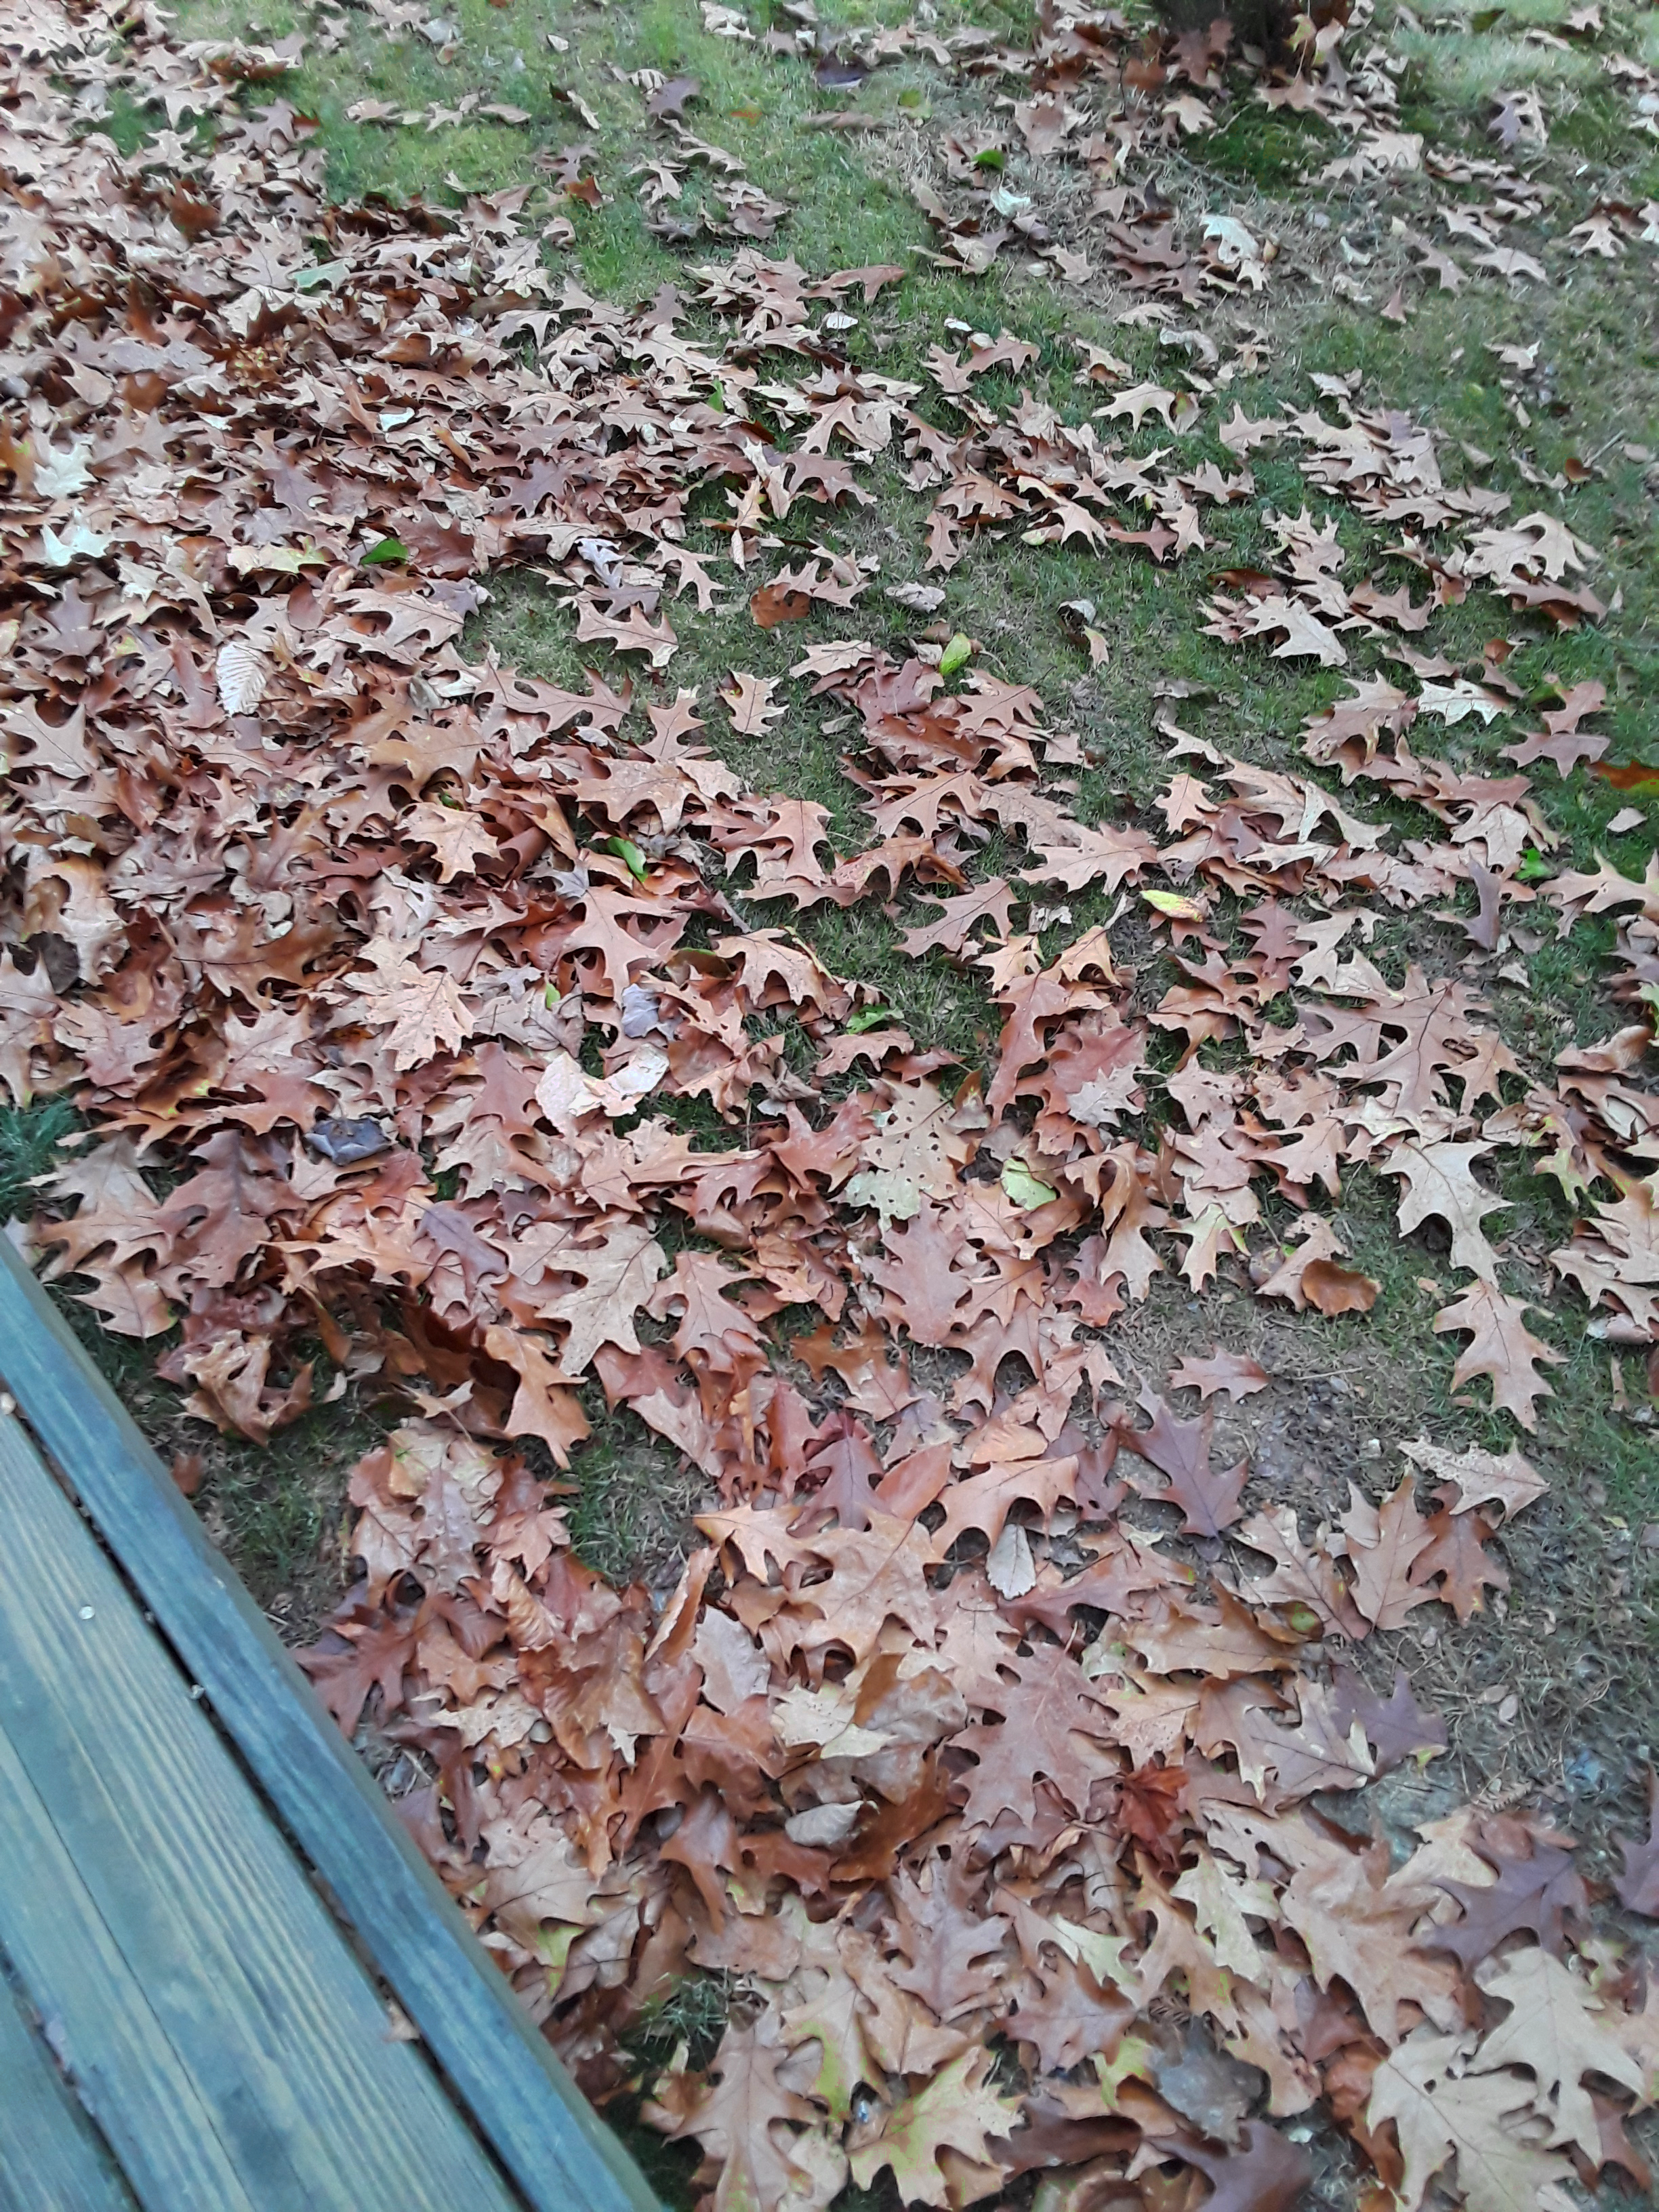 fallen oak leaves cover the ground